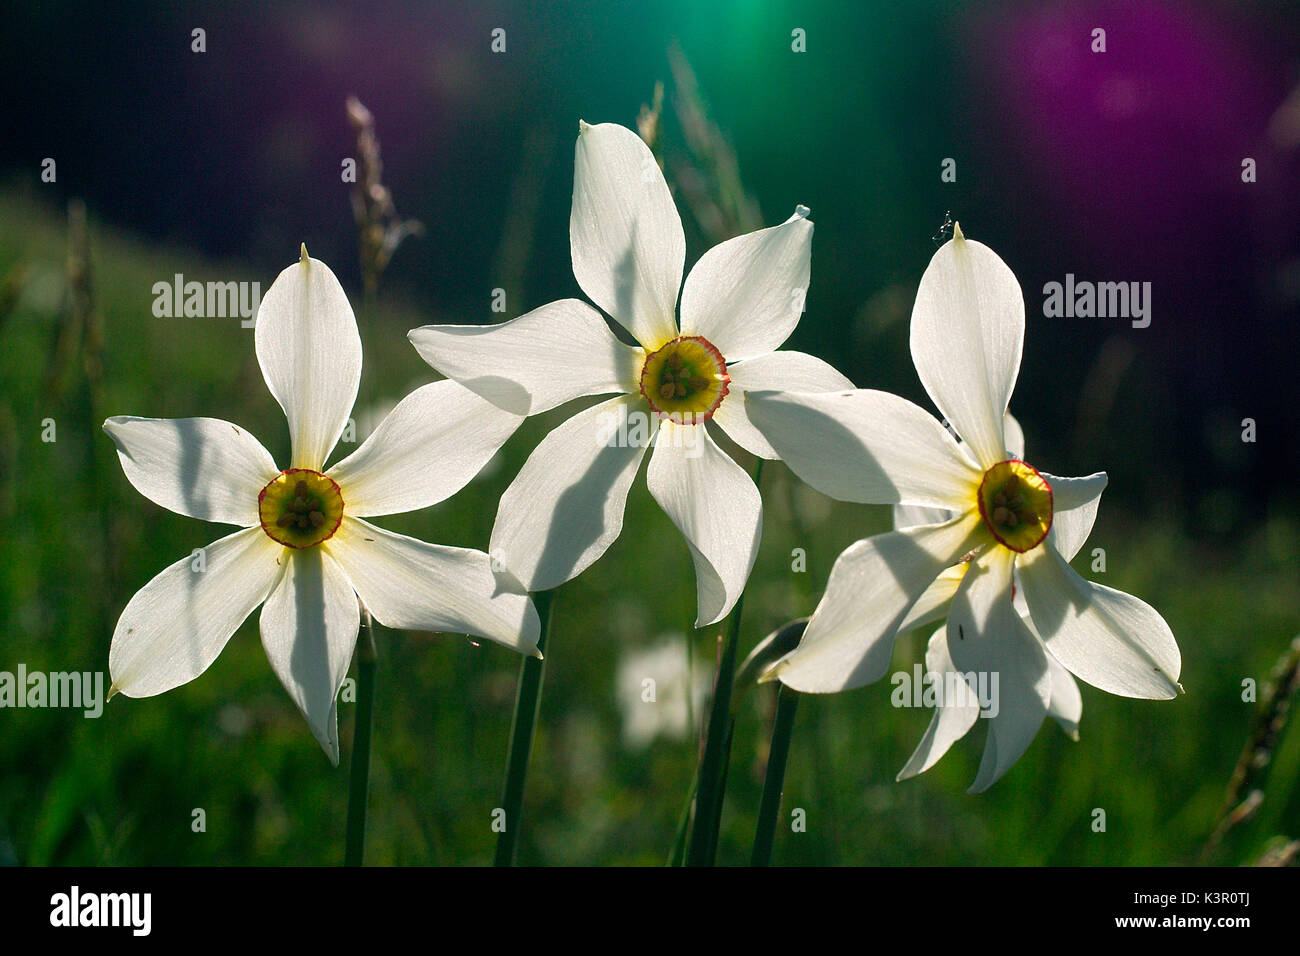 Narcissus is a genus of mainly hardy, mostly spring-flowering, bulbous perennials in the Amaryllis family, subfamily Stock Photo